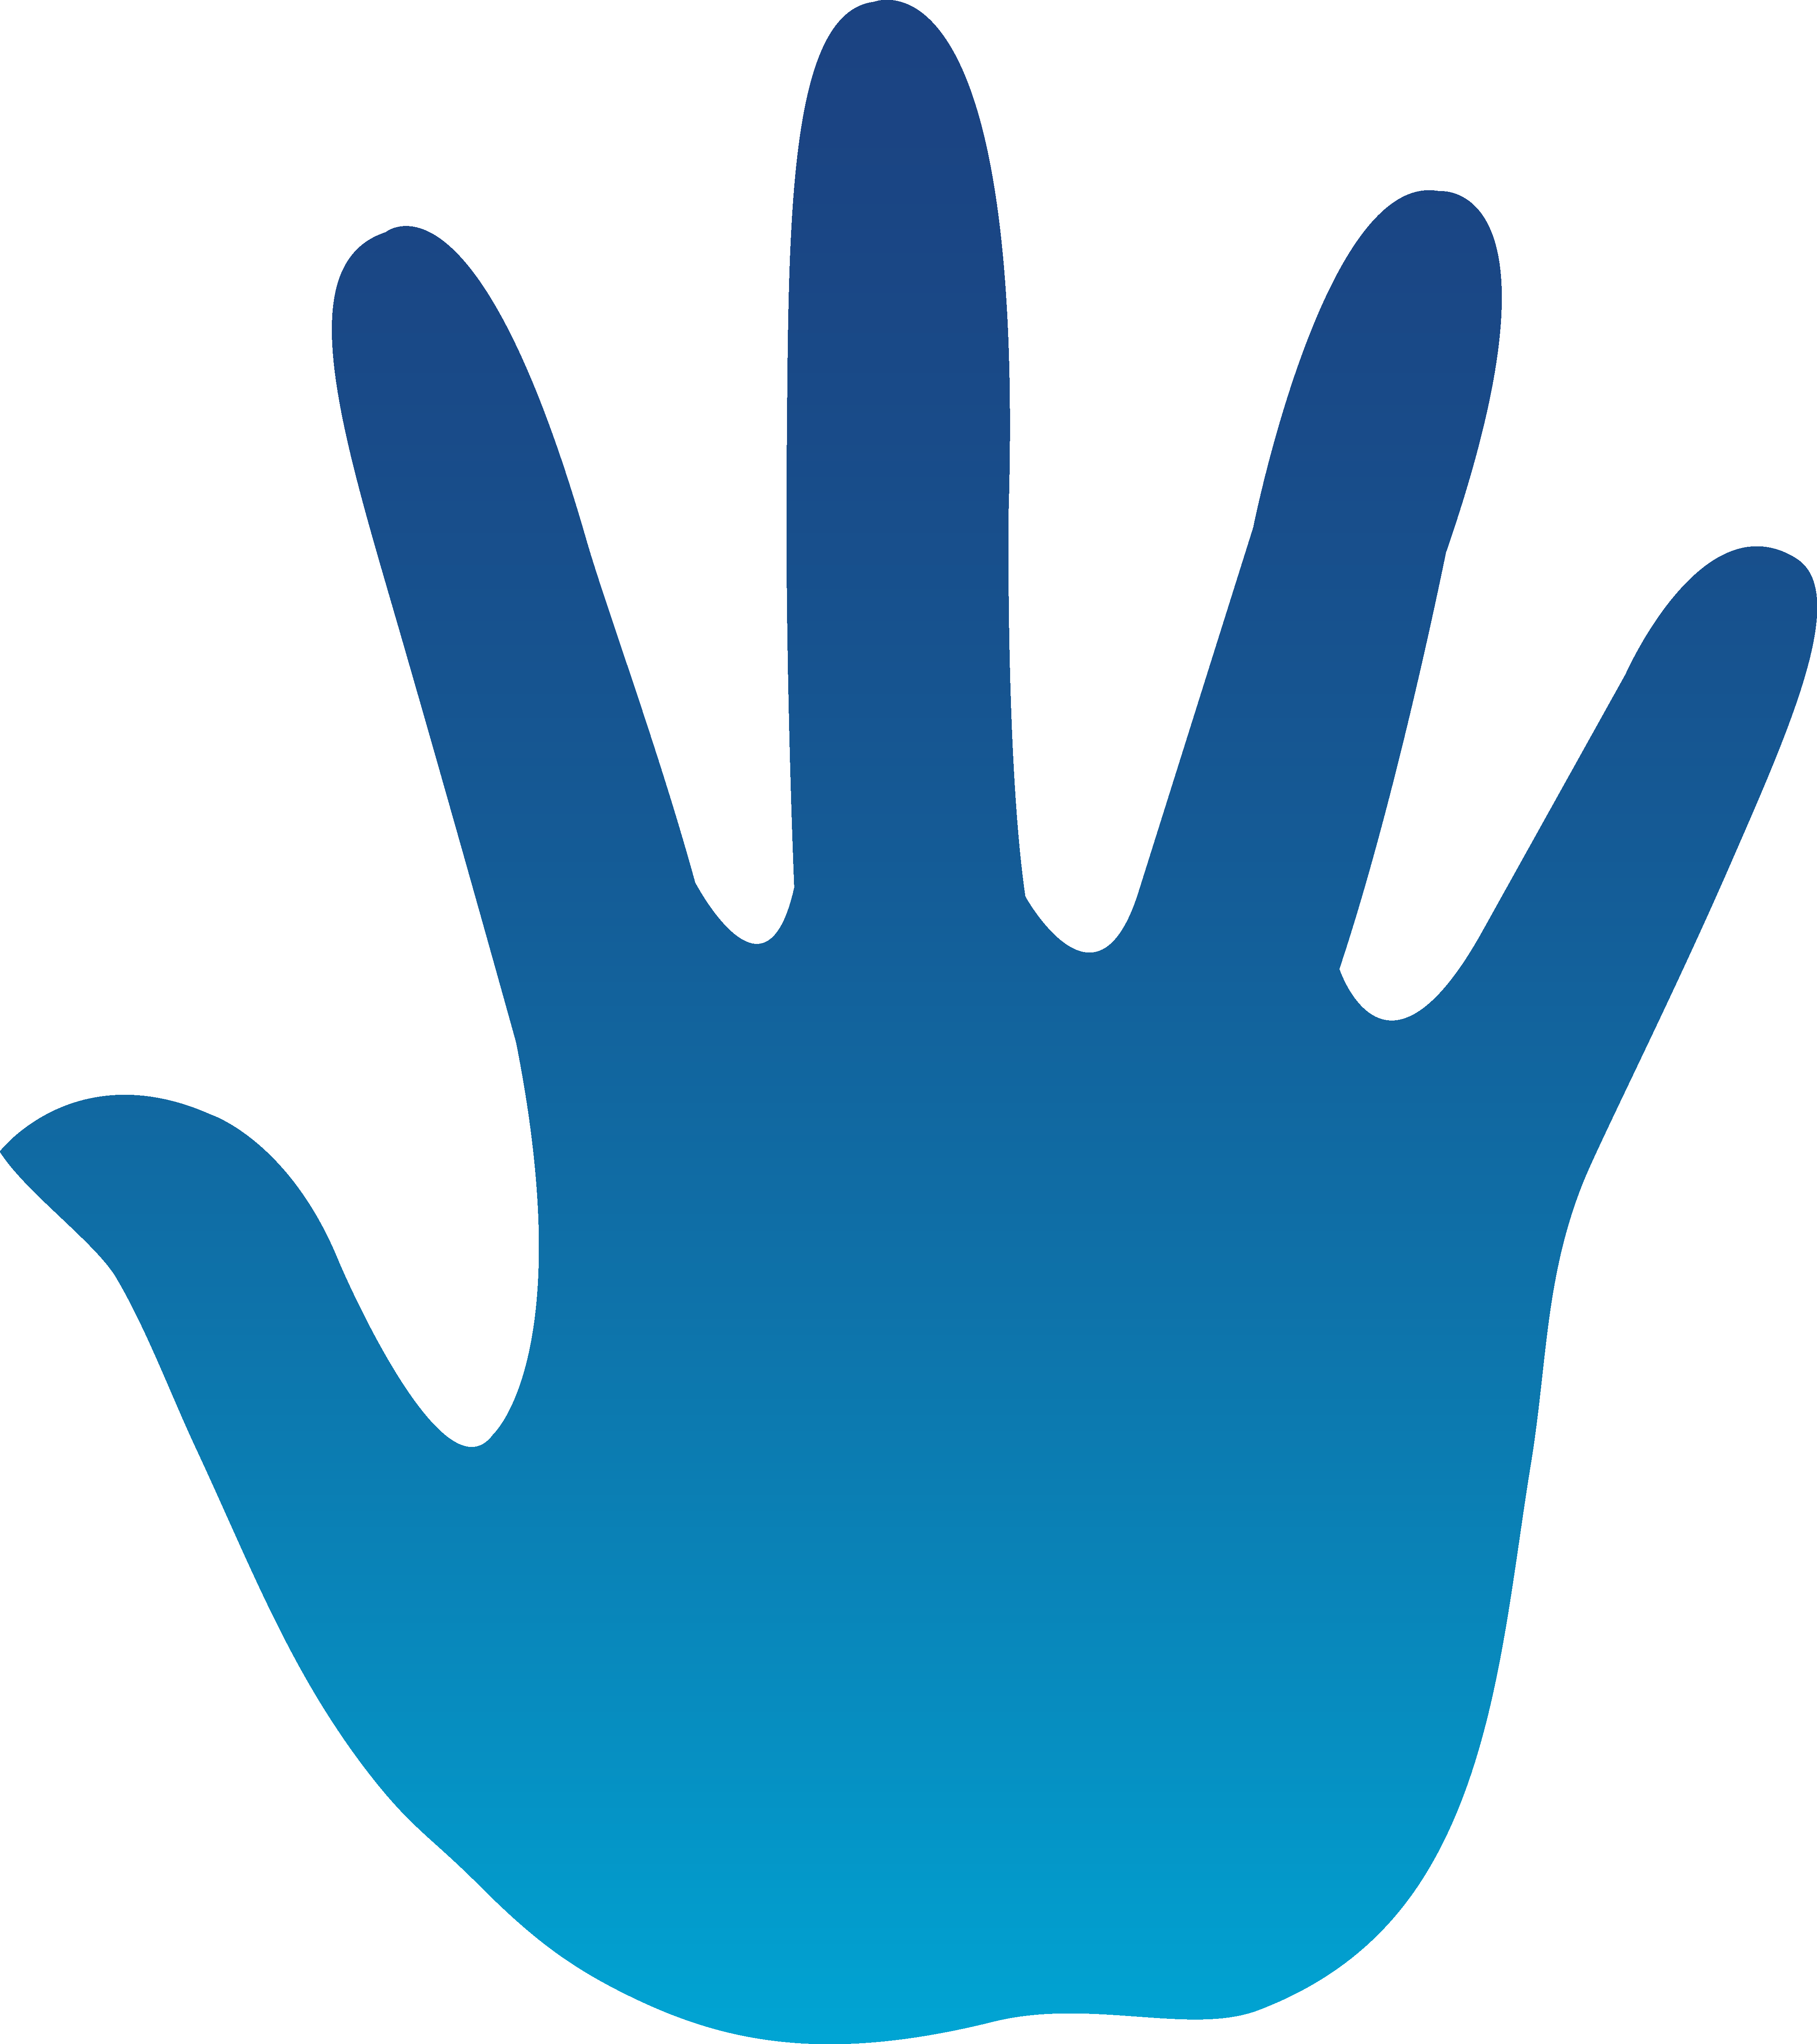 Handprints - ClipArt Best